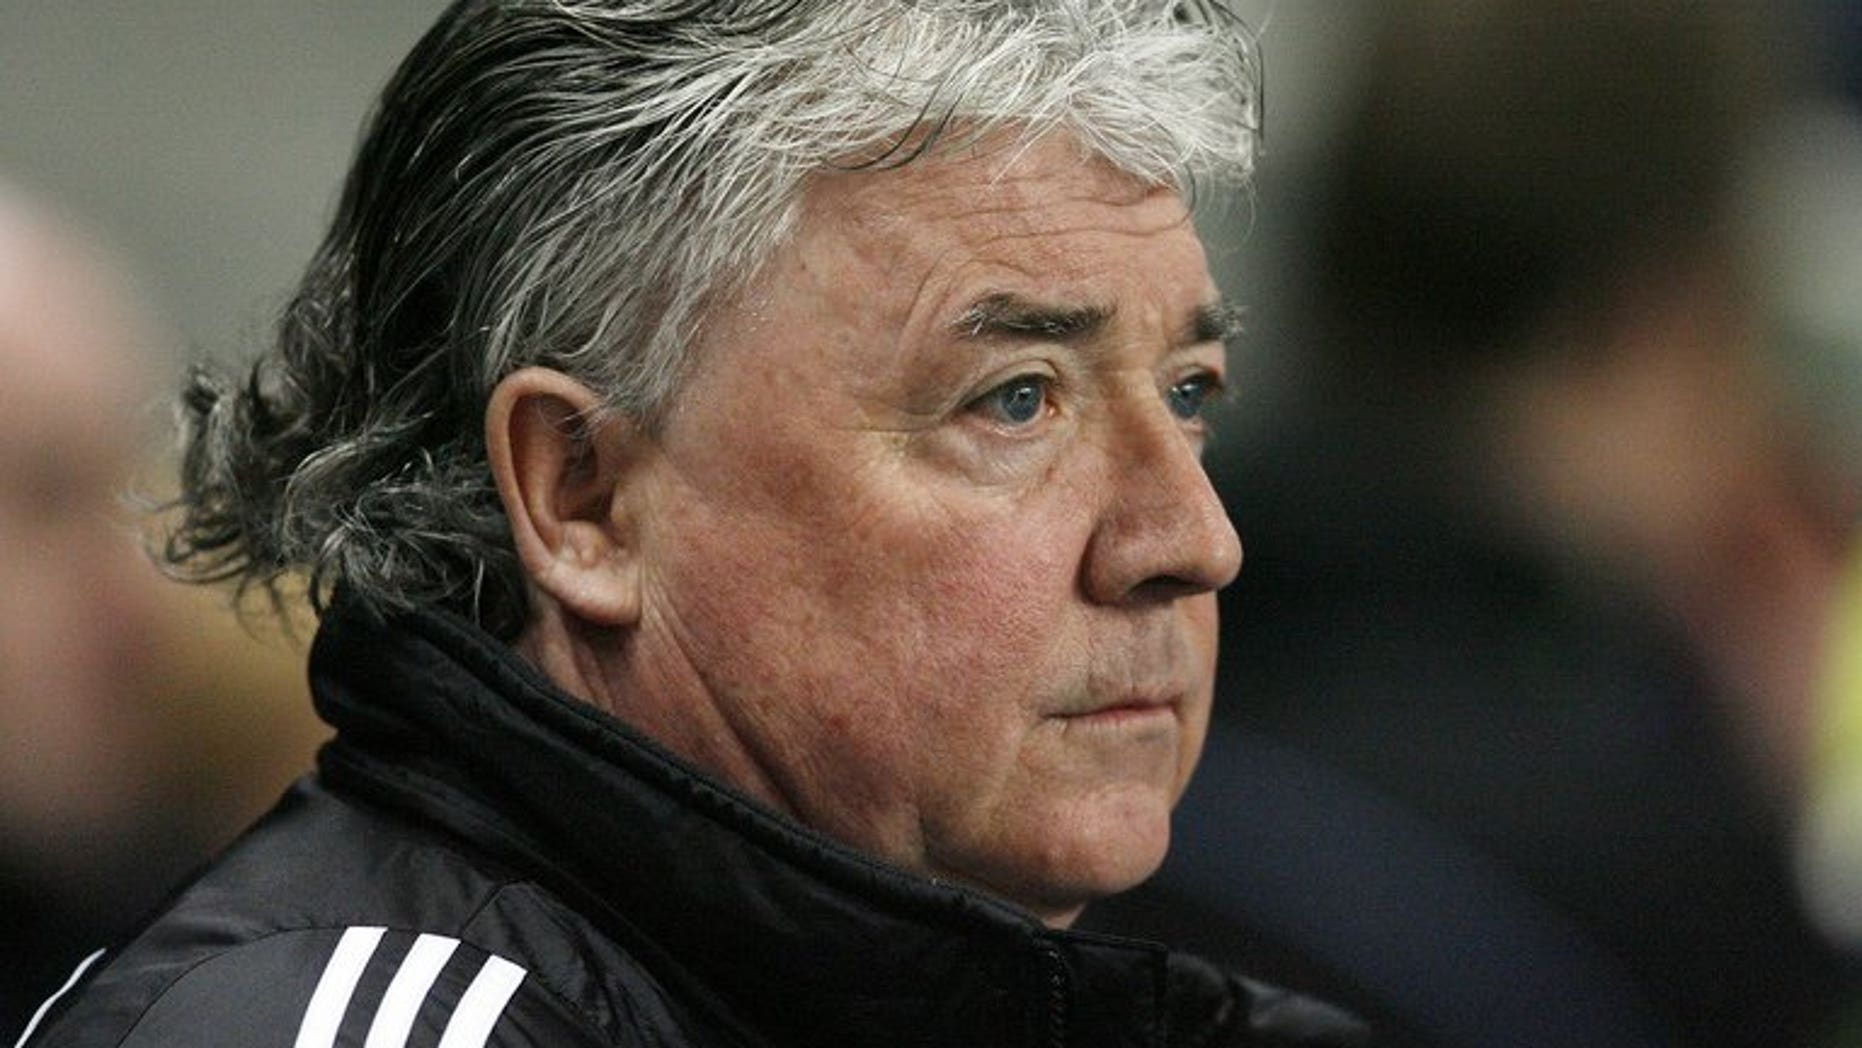 Joe Kinnear watches a Newcastle match against Manchester City at the City Of Manchester Stadium in Manchester on January 28, 2009. Kinnear has risked alienating Newcastle United fans further following his surprise return to the club, amid disquiet about his reappointment and claims that it will make coach Alan Pardew's position untenable.